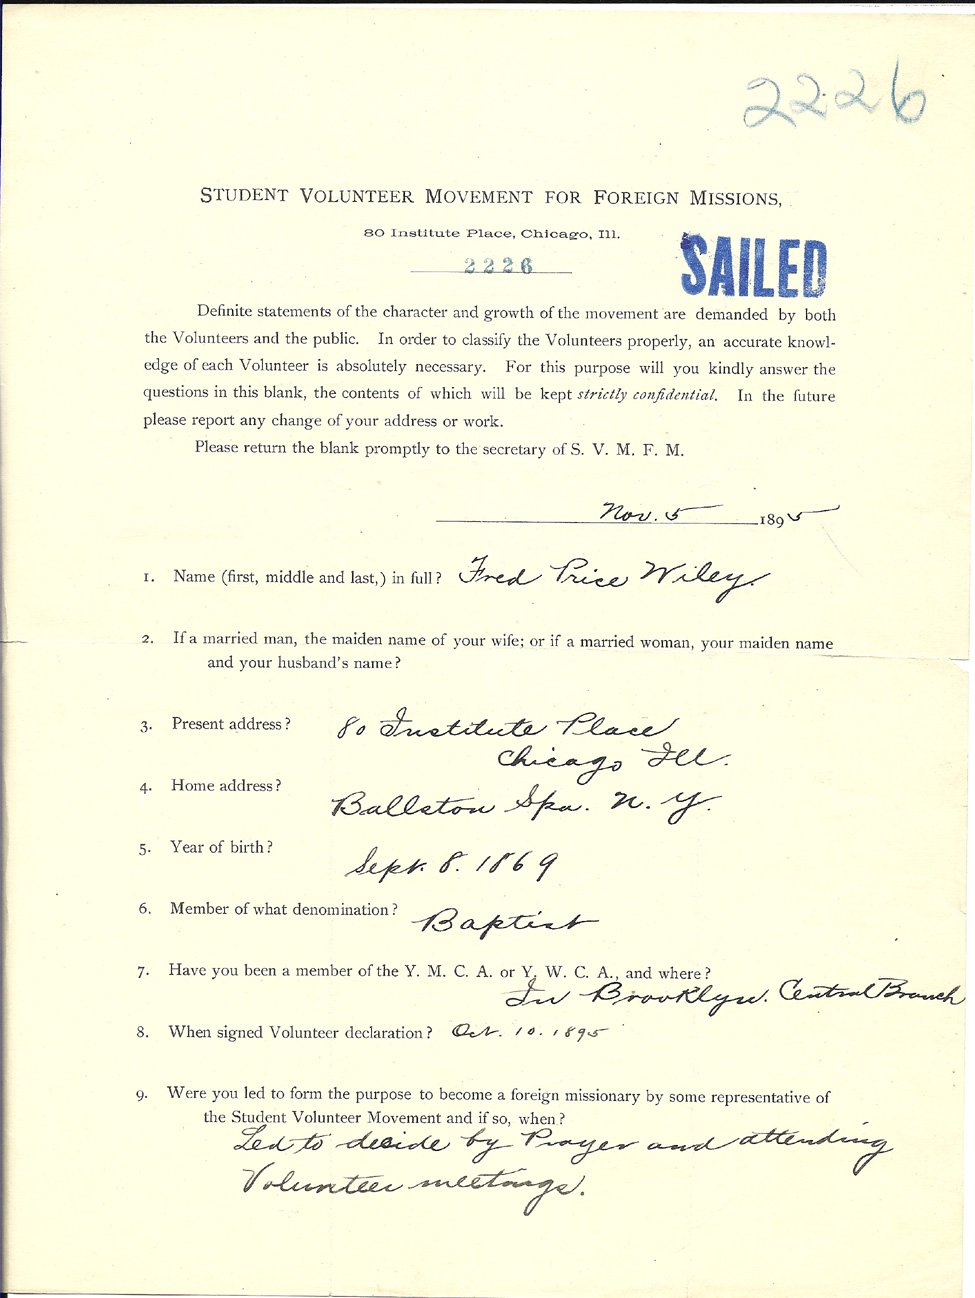 ... Volunteer Movement for Foreign Missions - Application form from 1895